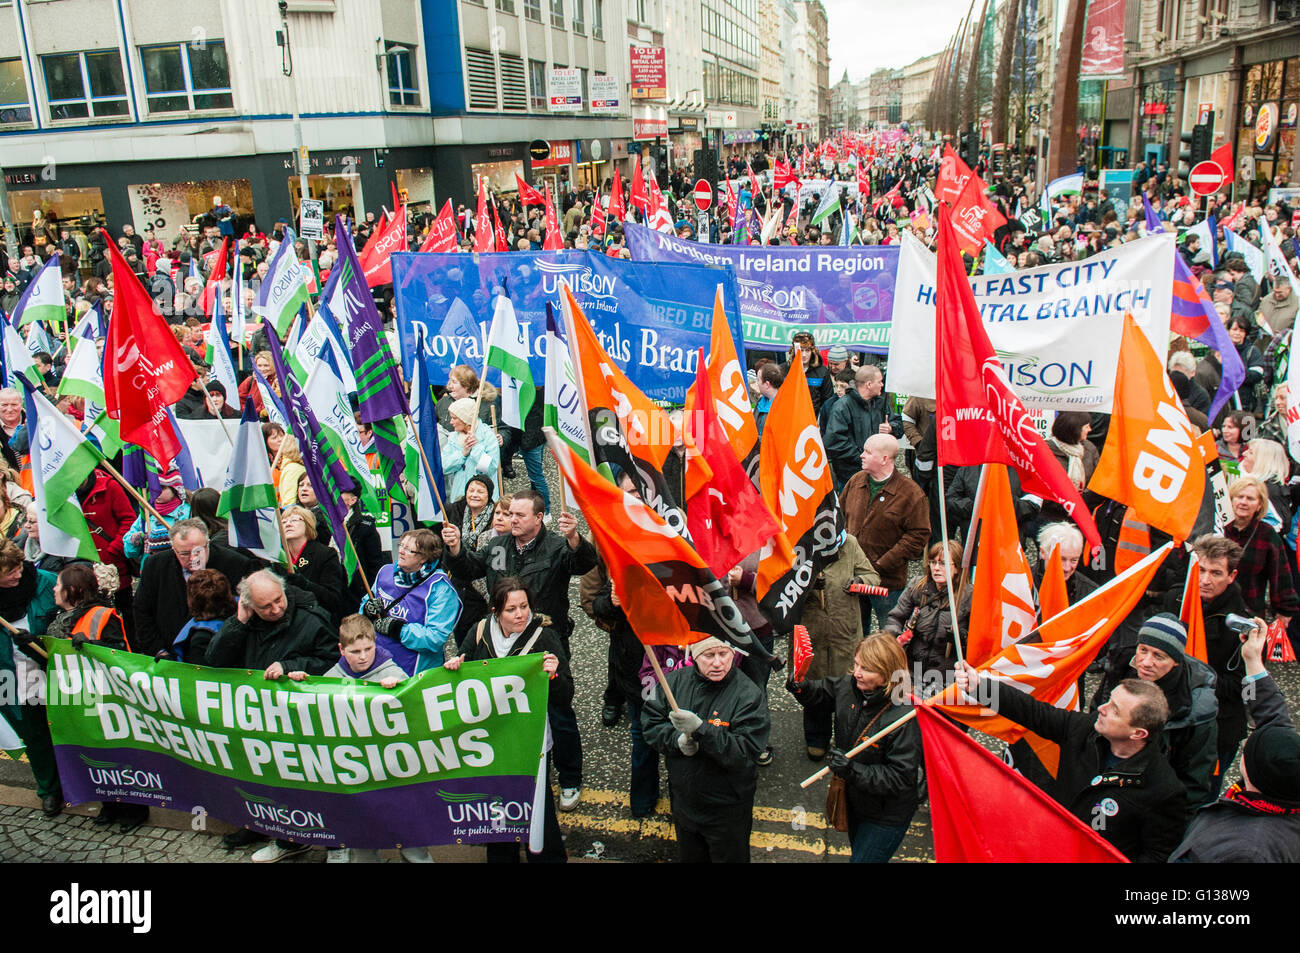 Belfast, Northern Ireland, 30 Nov 2011 - Thousands of striking public sector workers march to Belfast City Hall - Stock Image